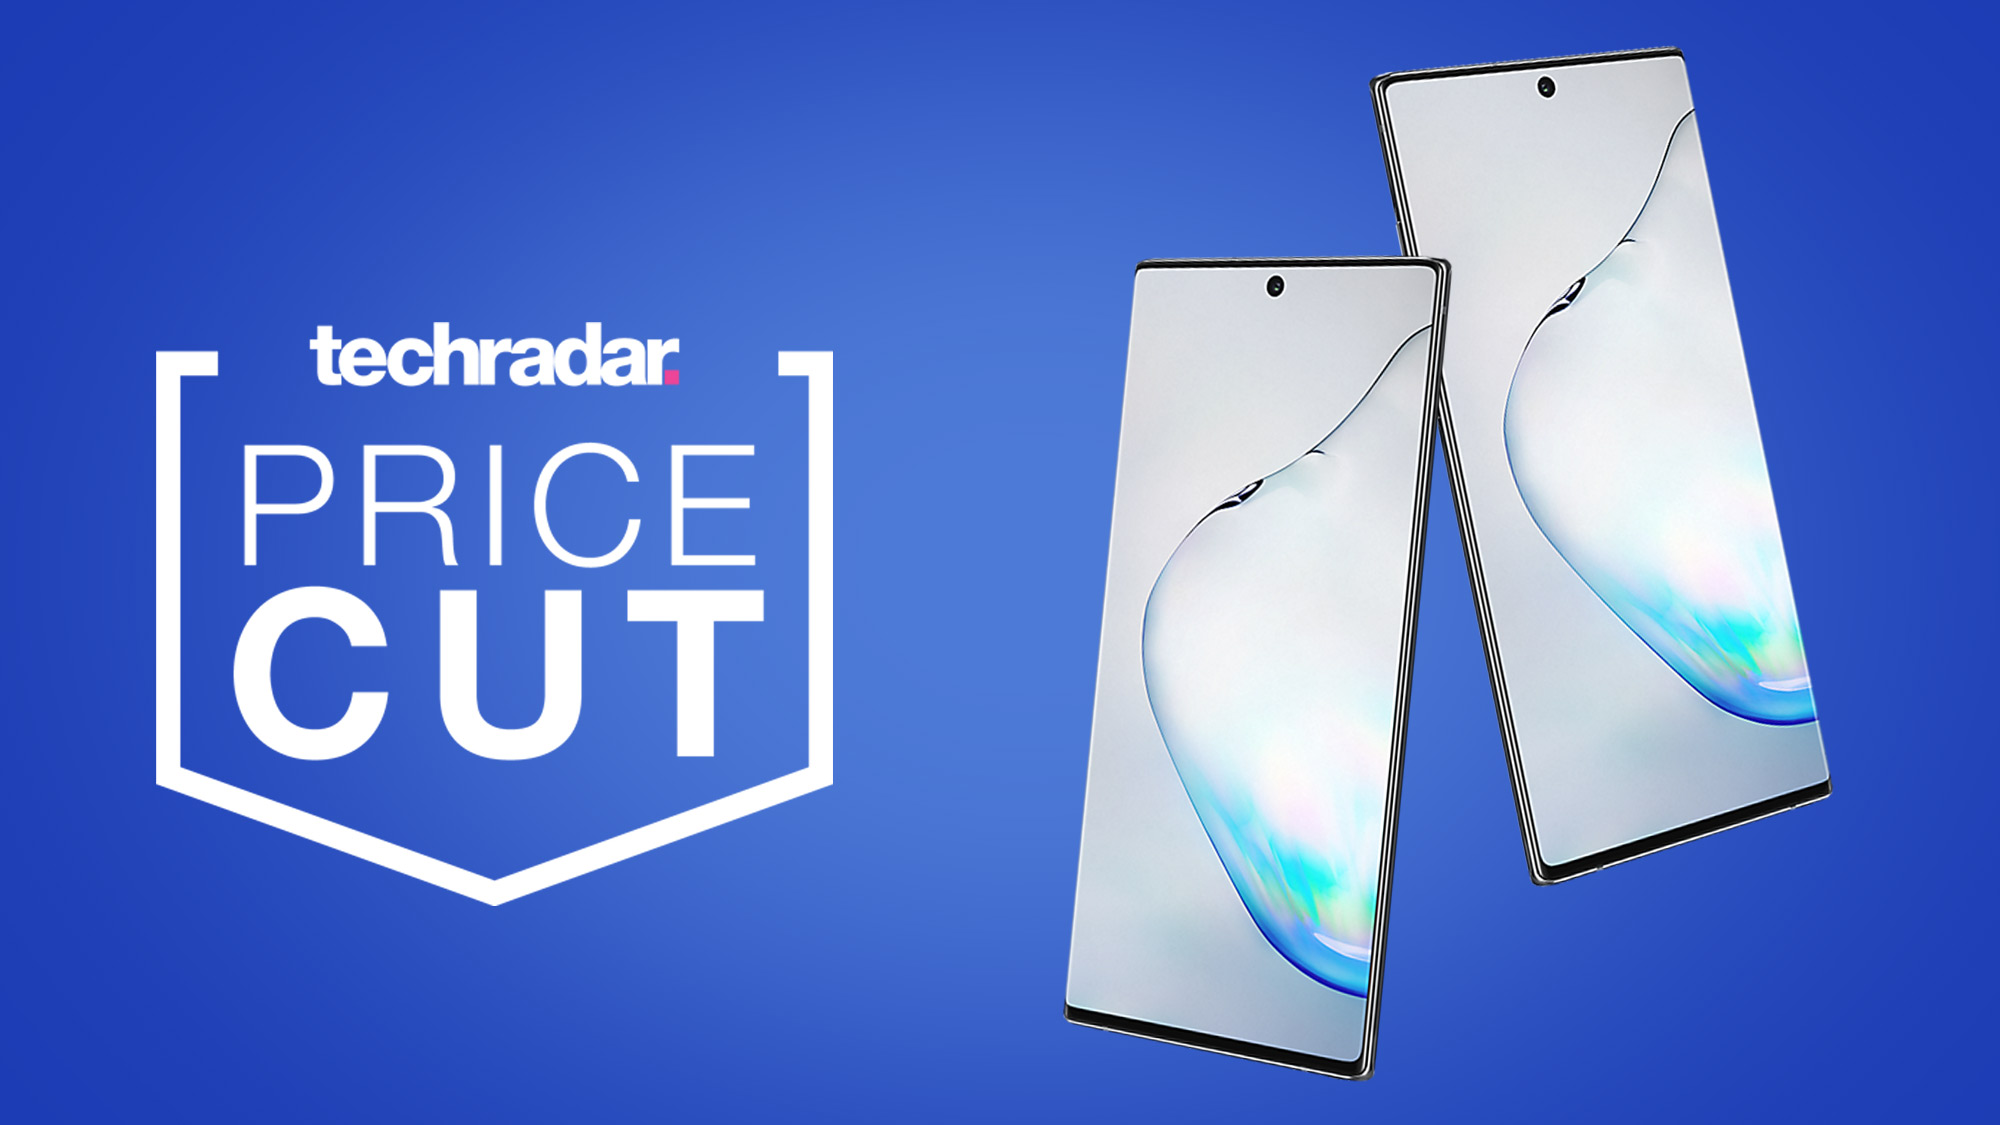 Save up to £200 on the entire SIM-free Galaxy Note 10 range directly from Samsung